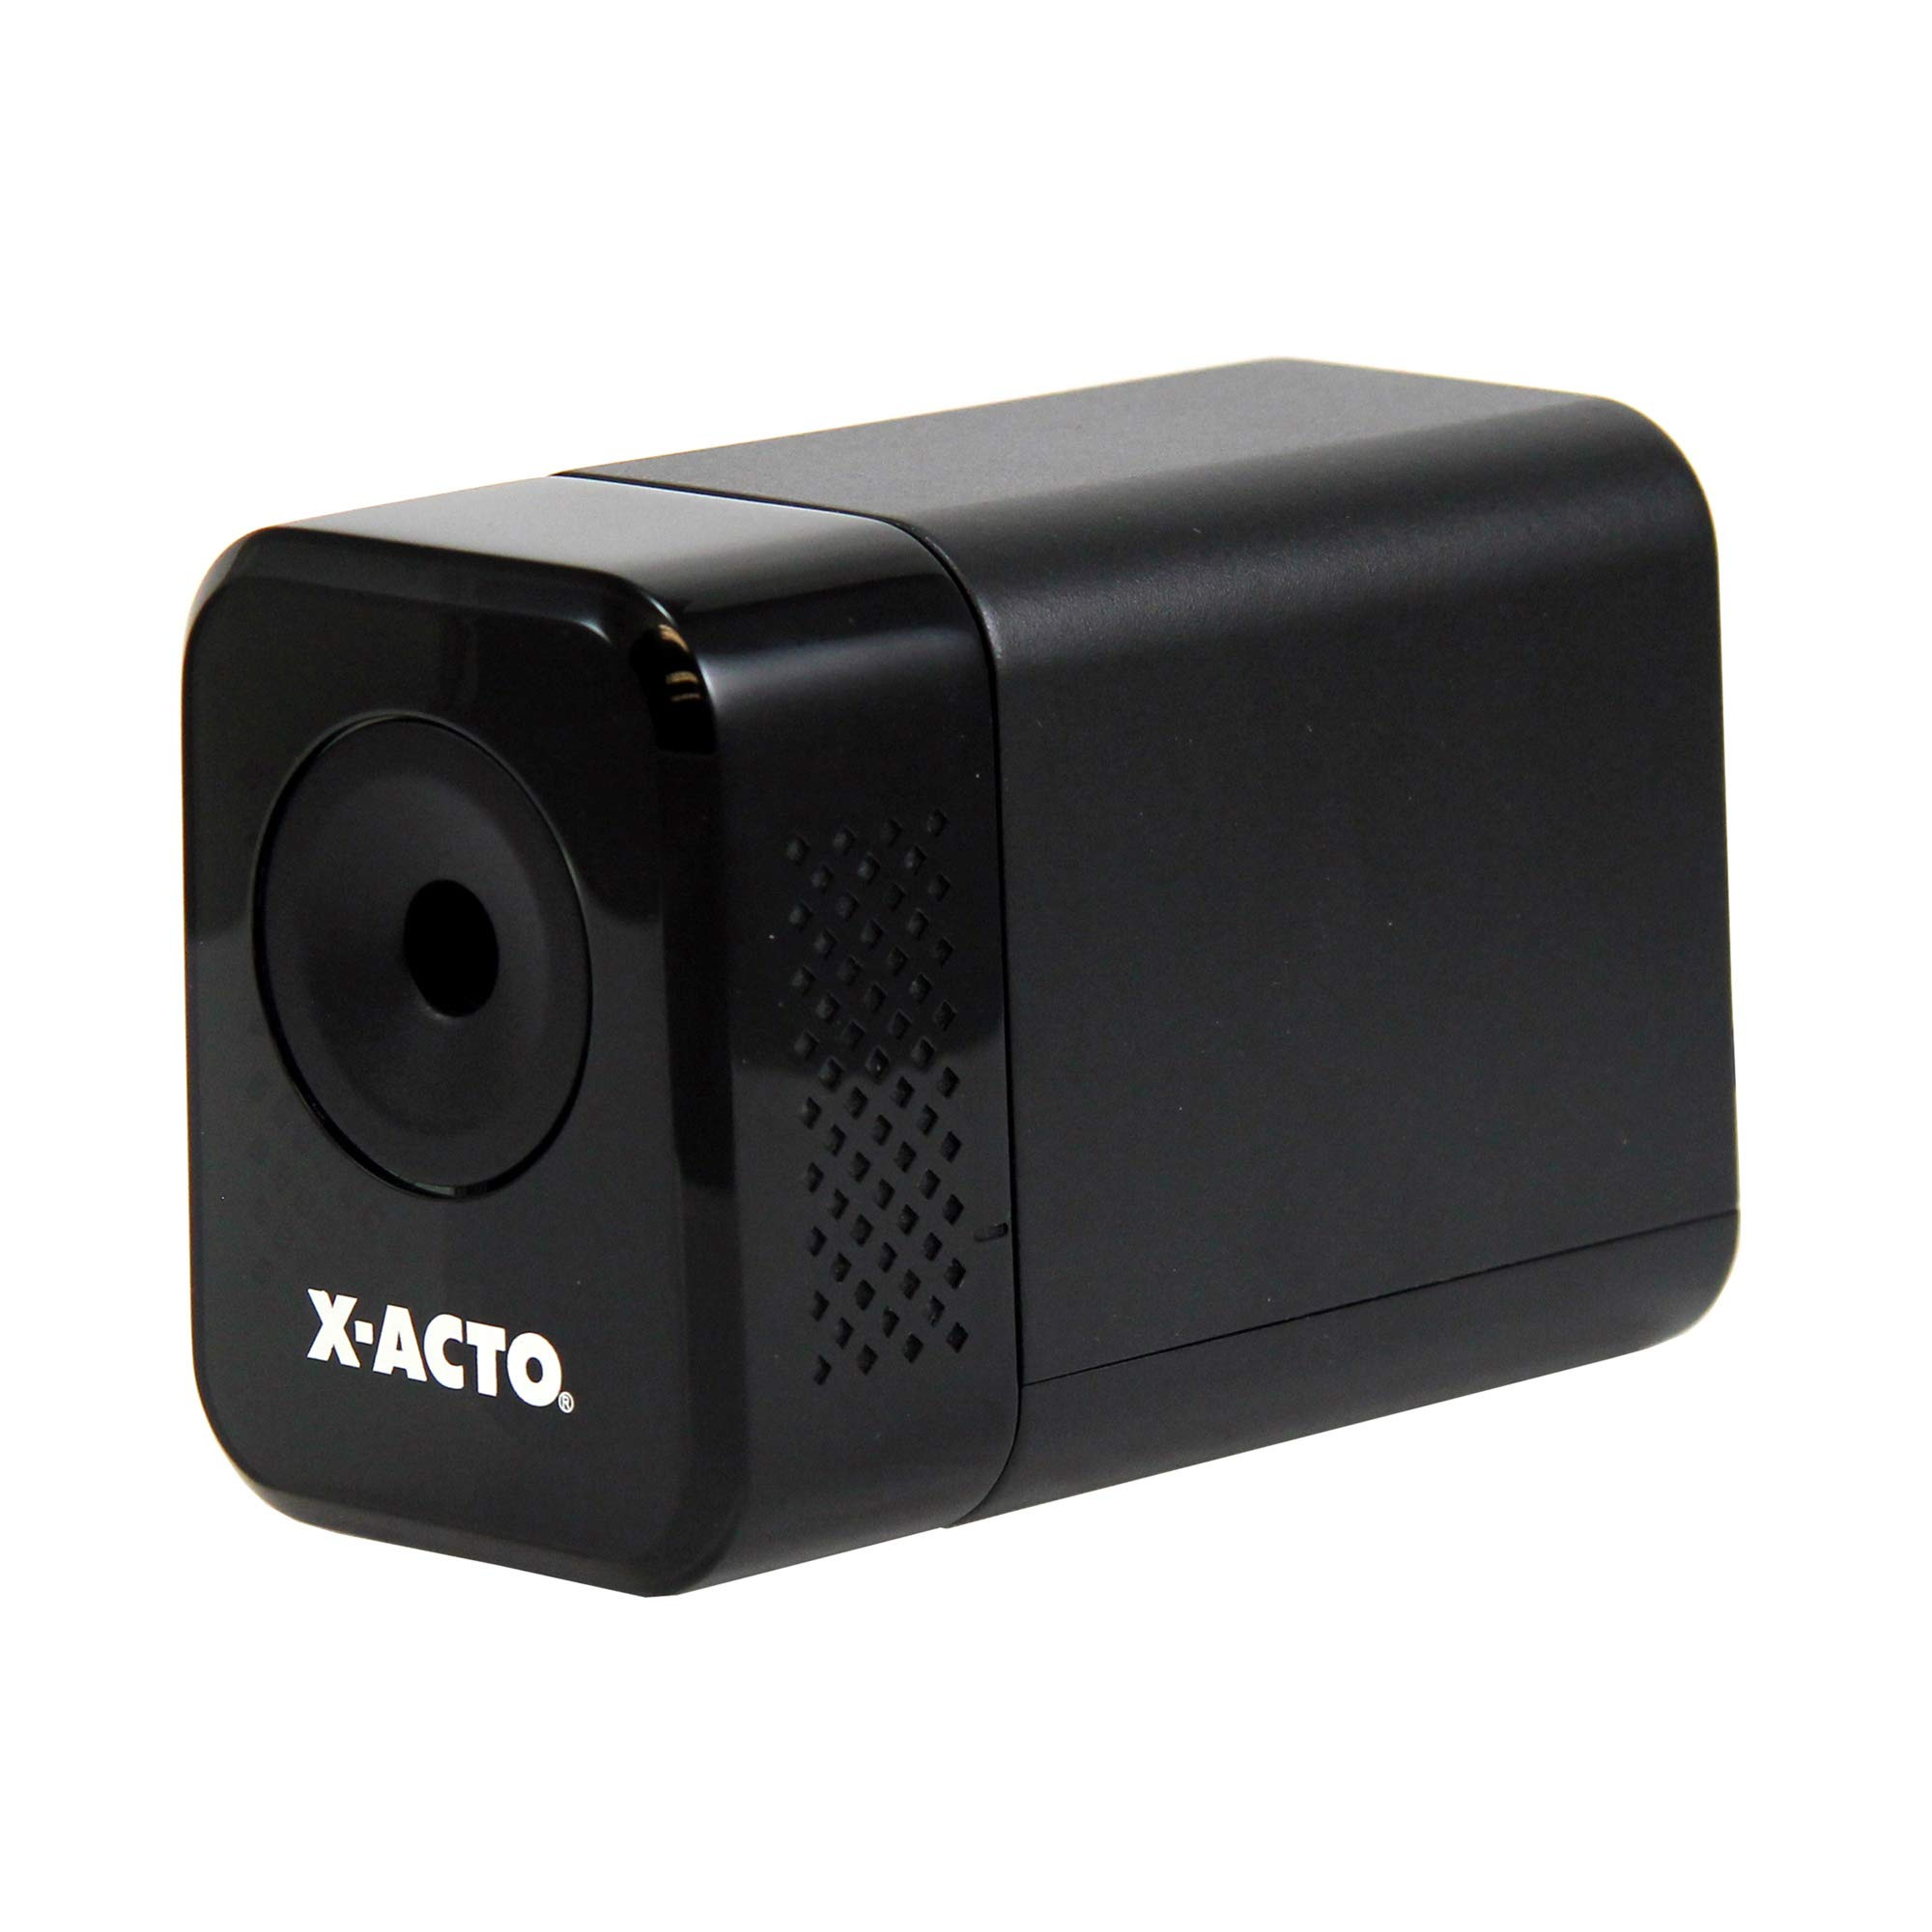 X-ACTO Electric Pencil Sharpener | XLR Heavy Duty Electric Pencil Sharpener, Quiet Motor, Pencil Saver Technology, Auto-Reset and Safe Start by X-Acto